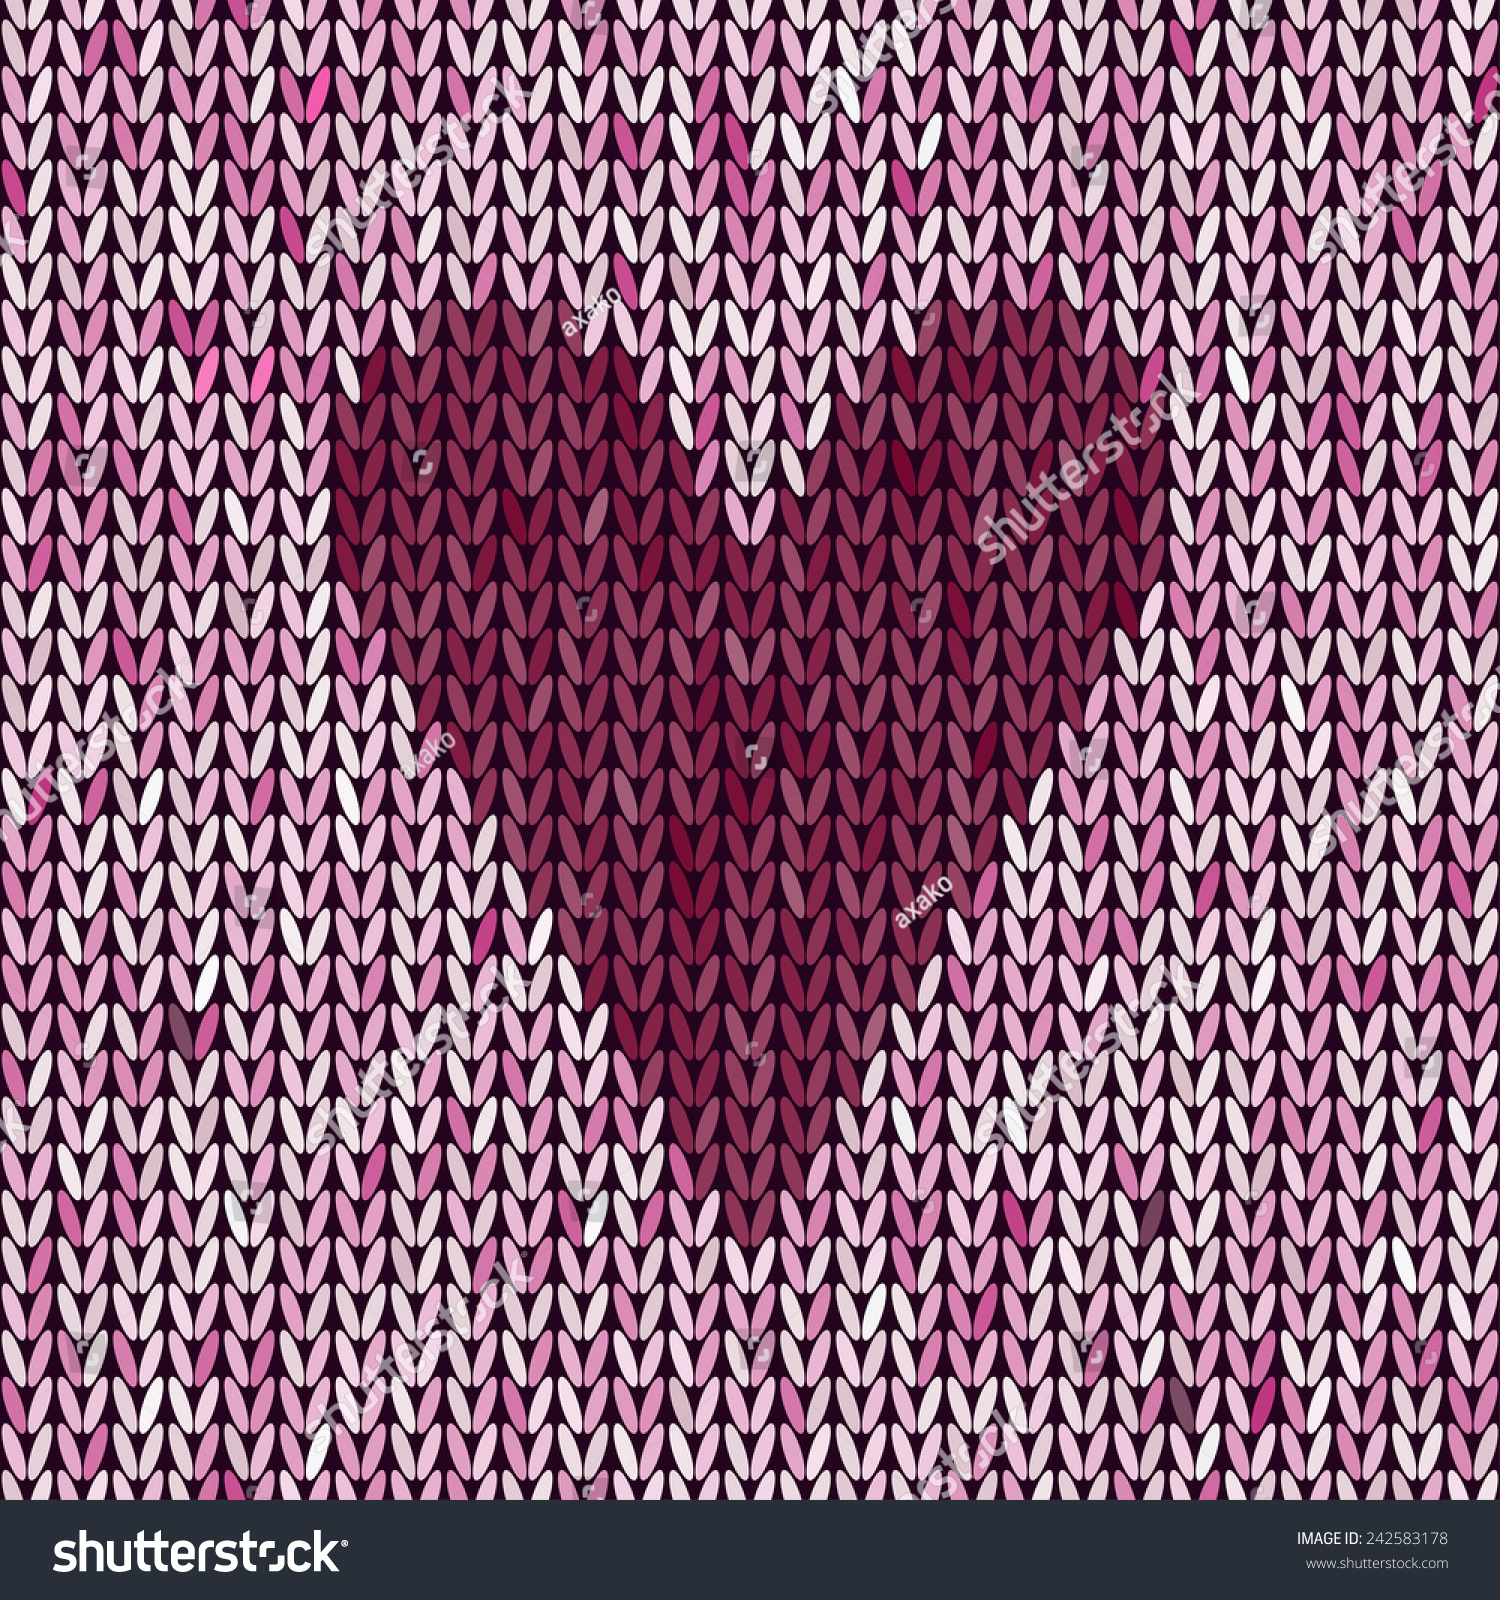 Knitted Pattern Heart Knit Texture Love Stock Vector (2018 ...